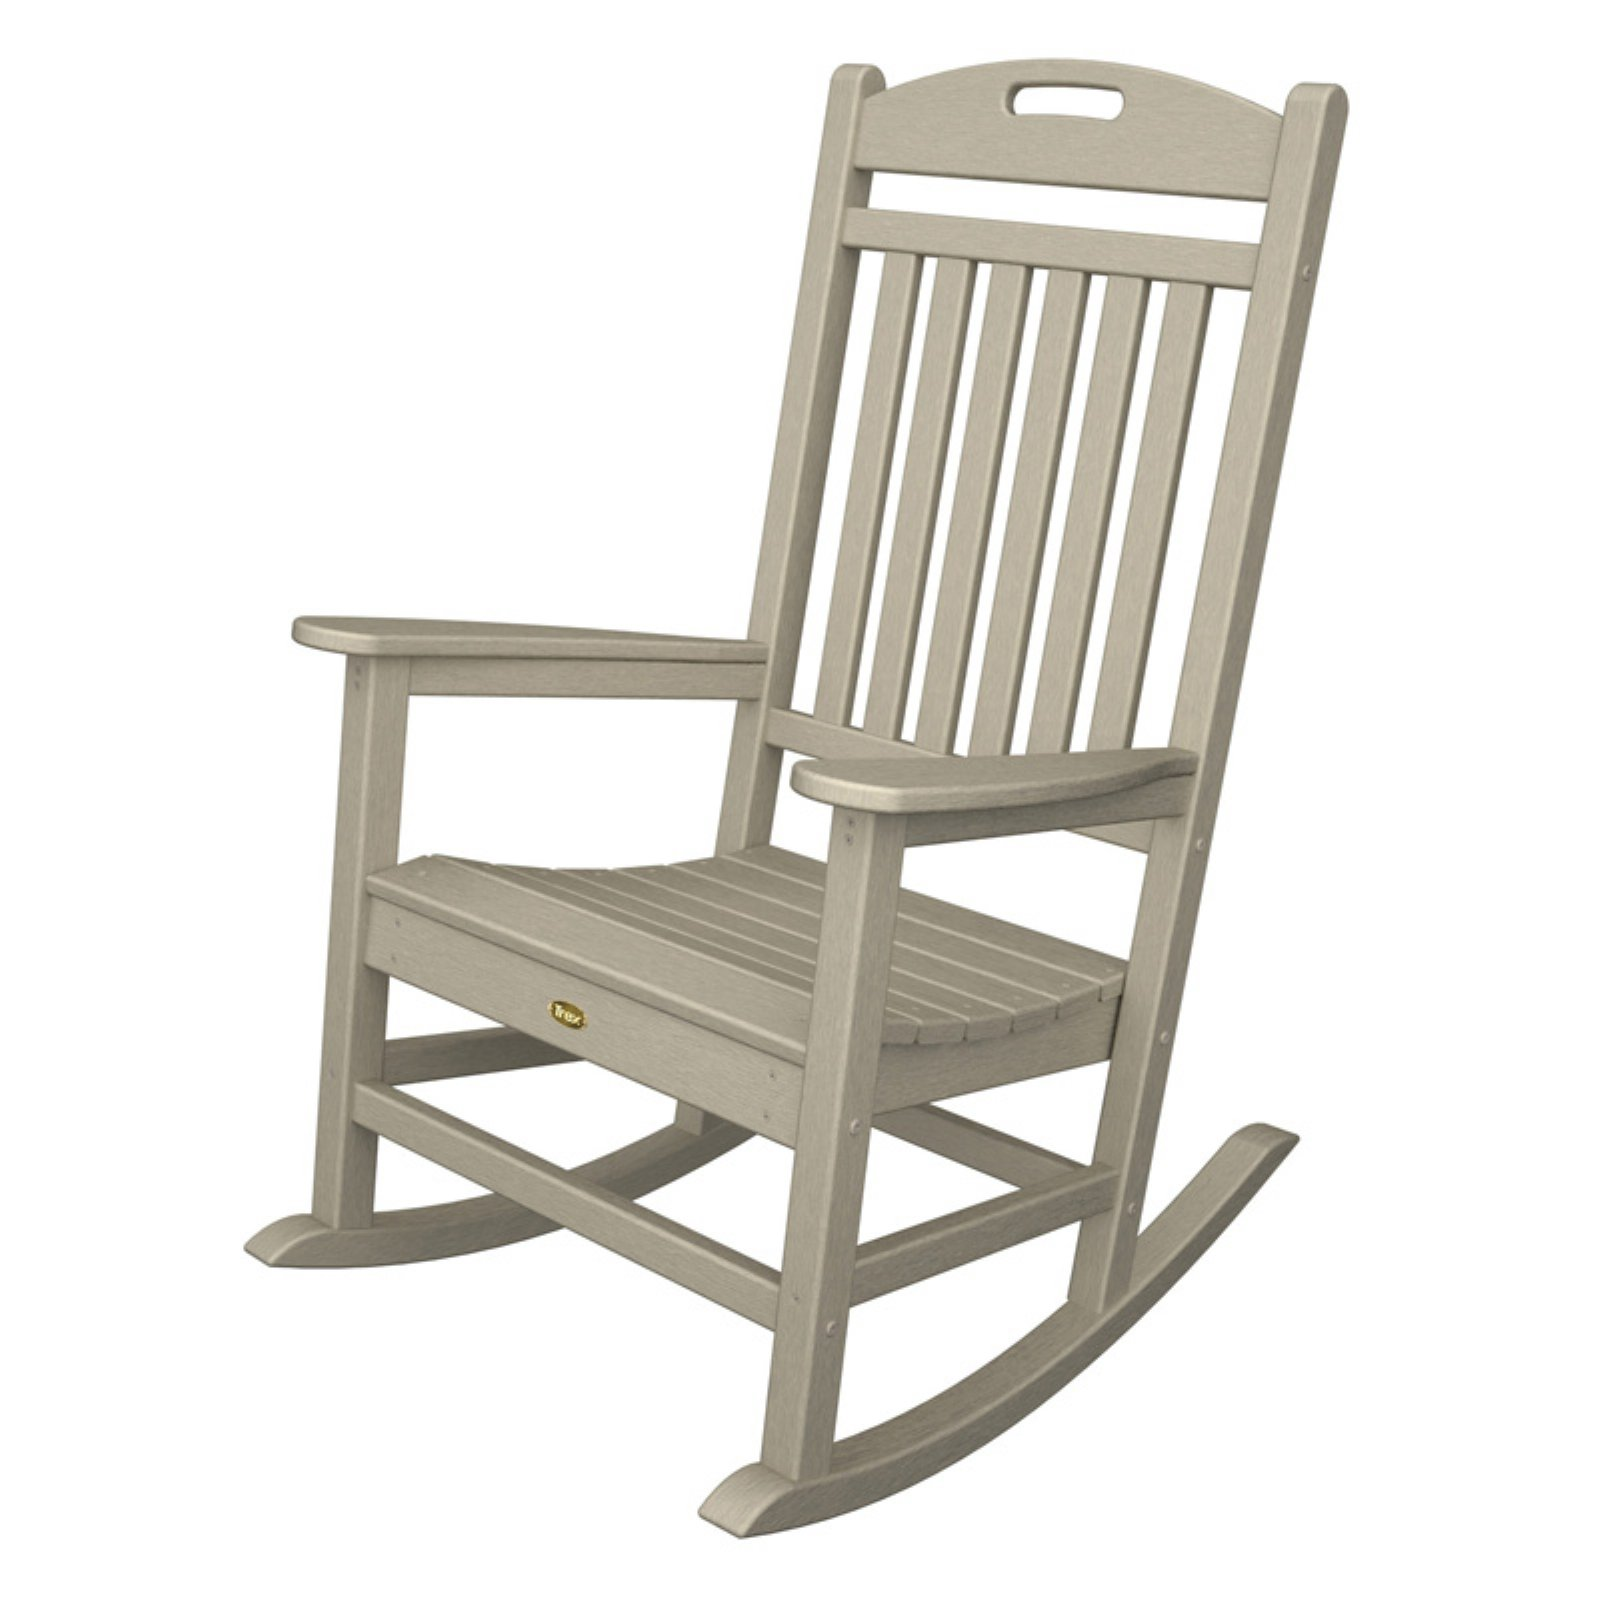 Trex outdoor furniture recycled plastic yacht club rocking chair walmart com